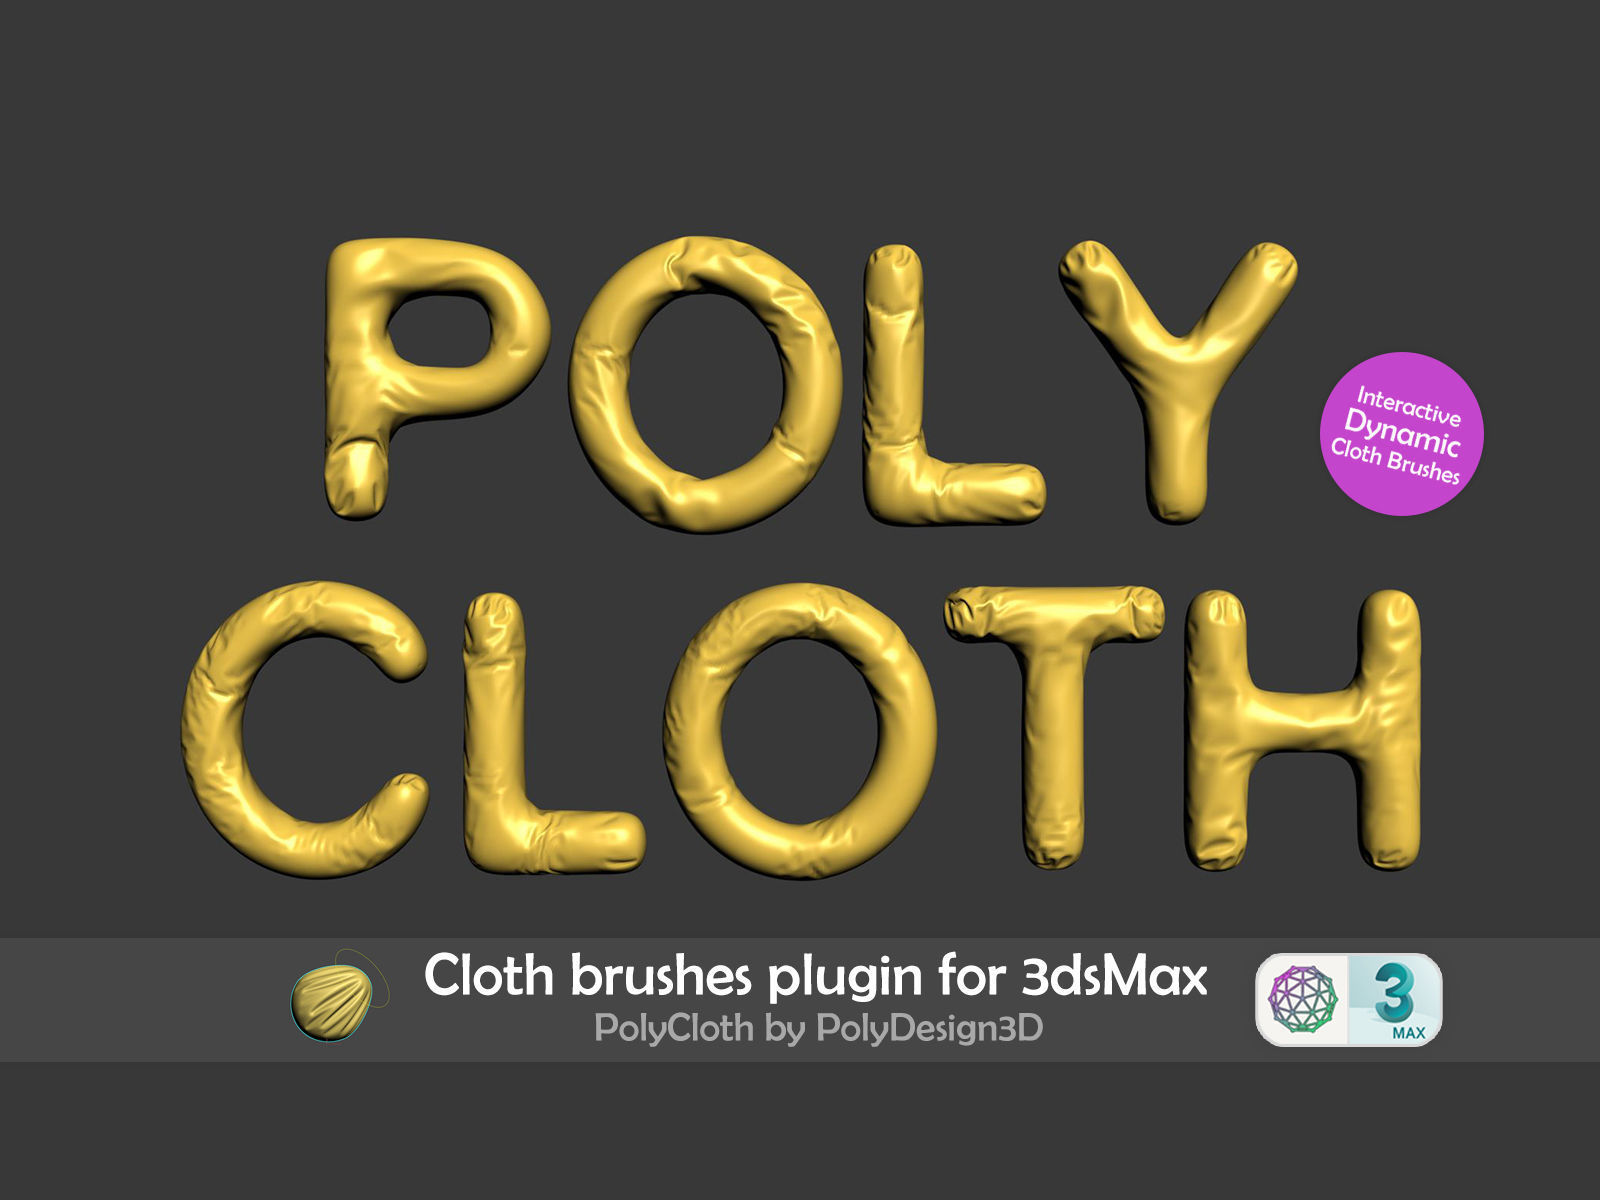 PolyCloth ClothBrush Plugin for 3dsMax 3D model